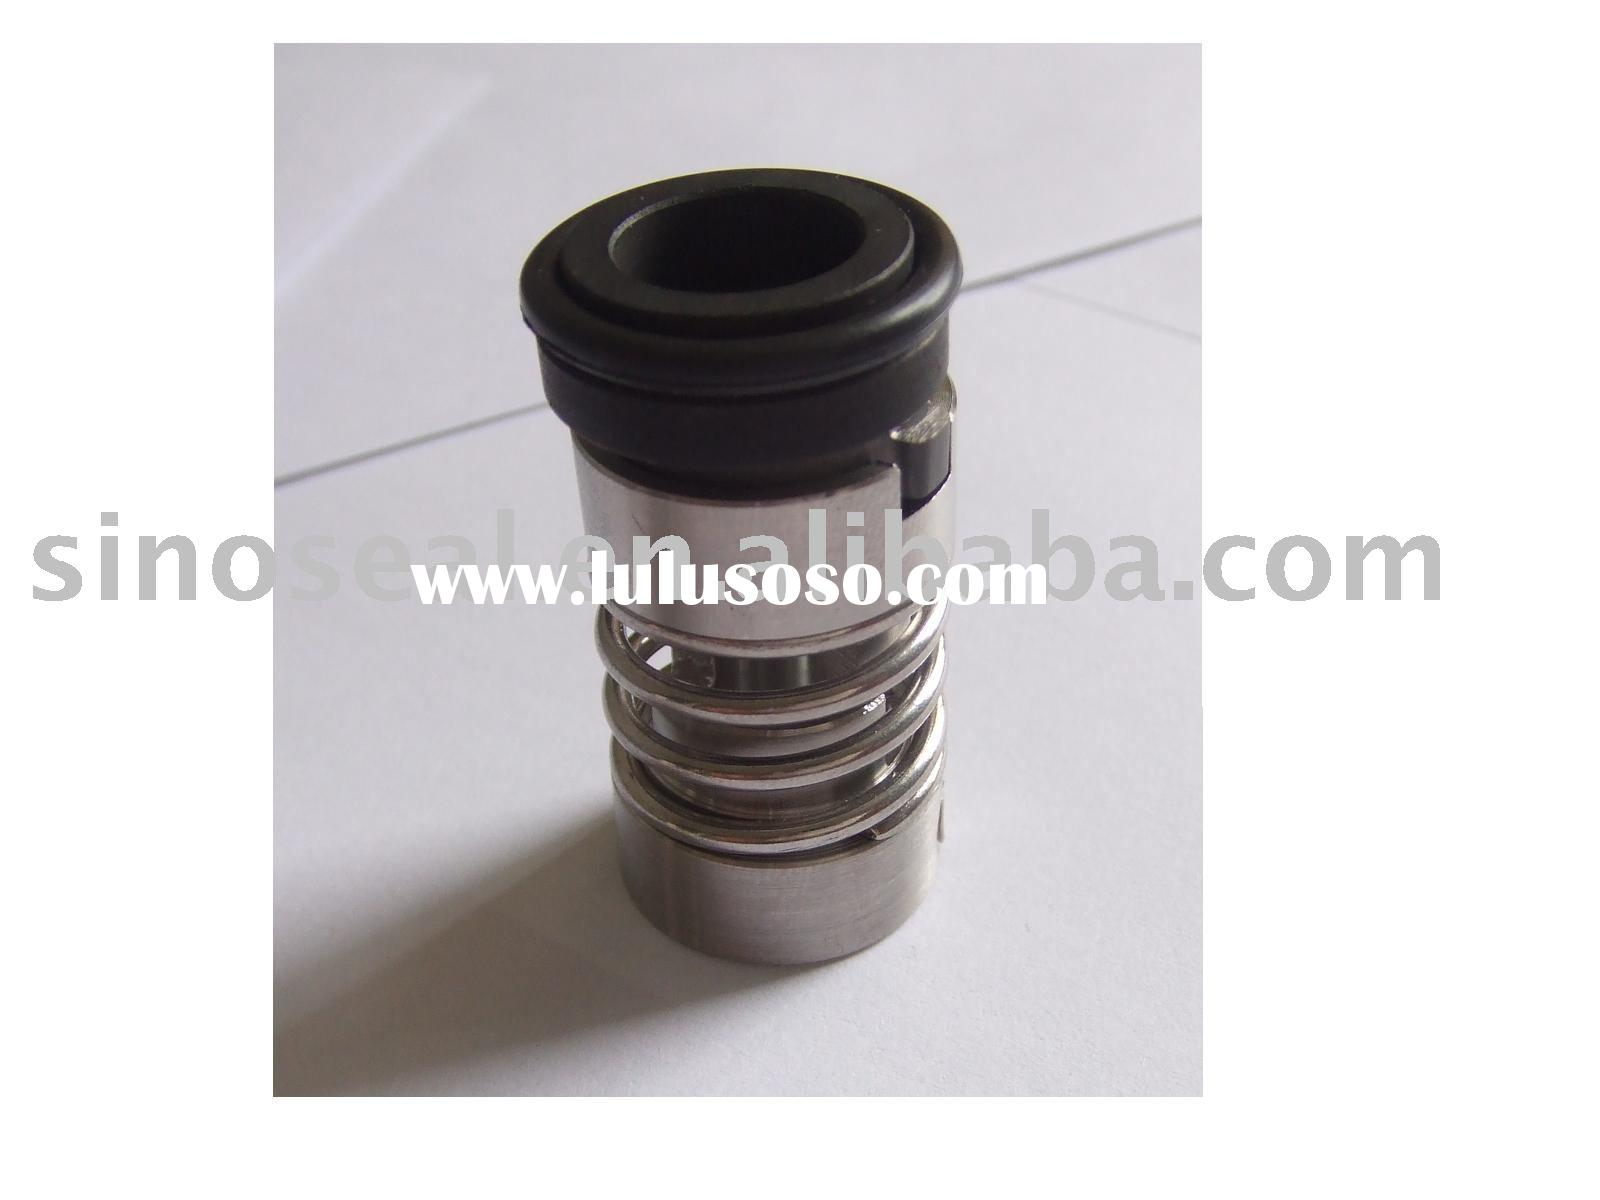 Grundfos Pump mechanical seal (SSCR2)